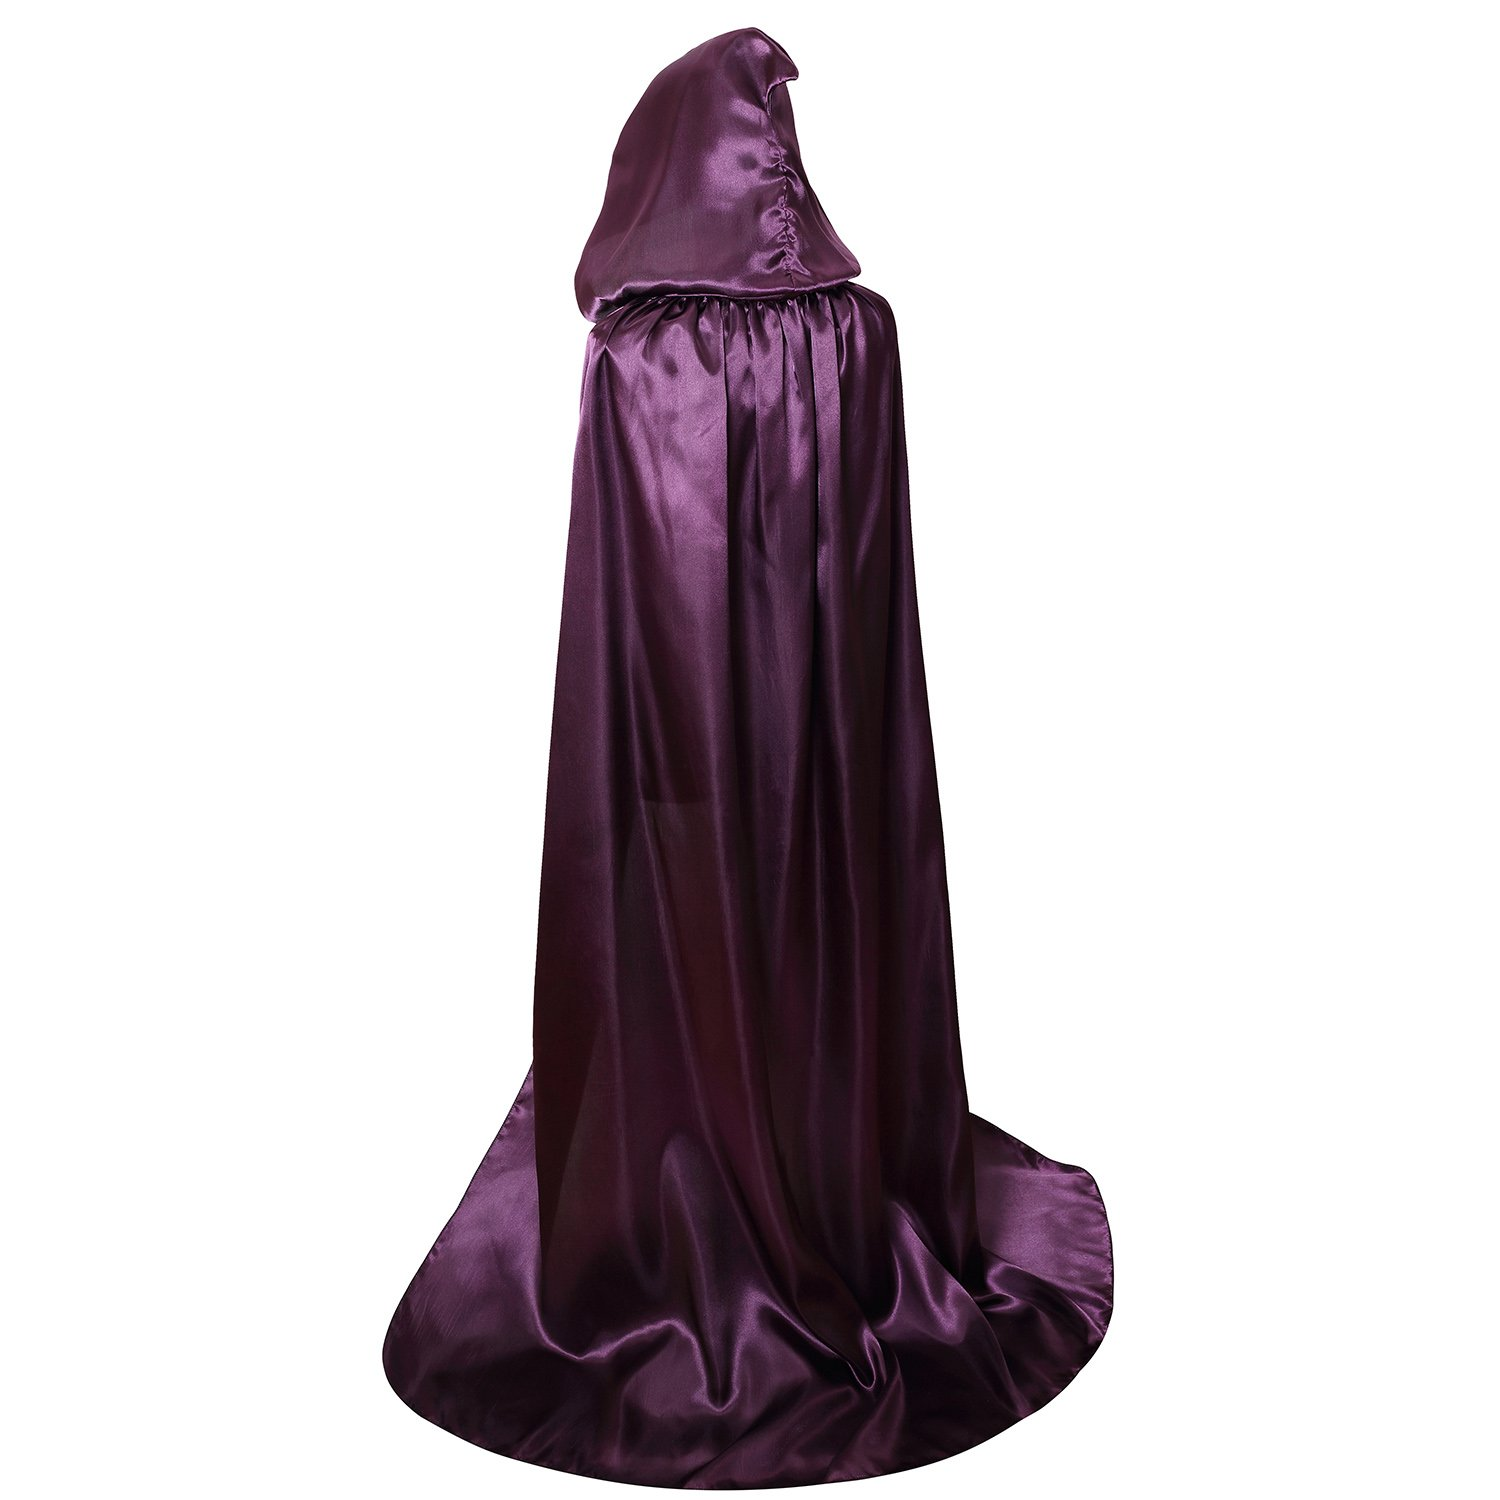 Unisex Hooded Cloak Coat Witch Robe Cape Long